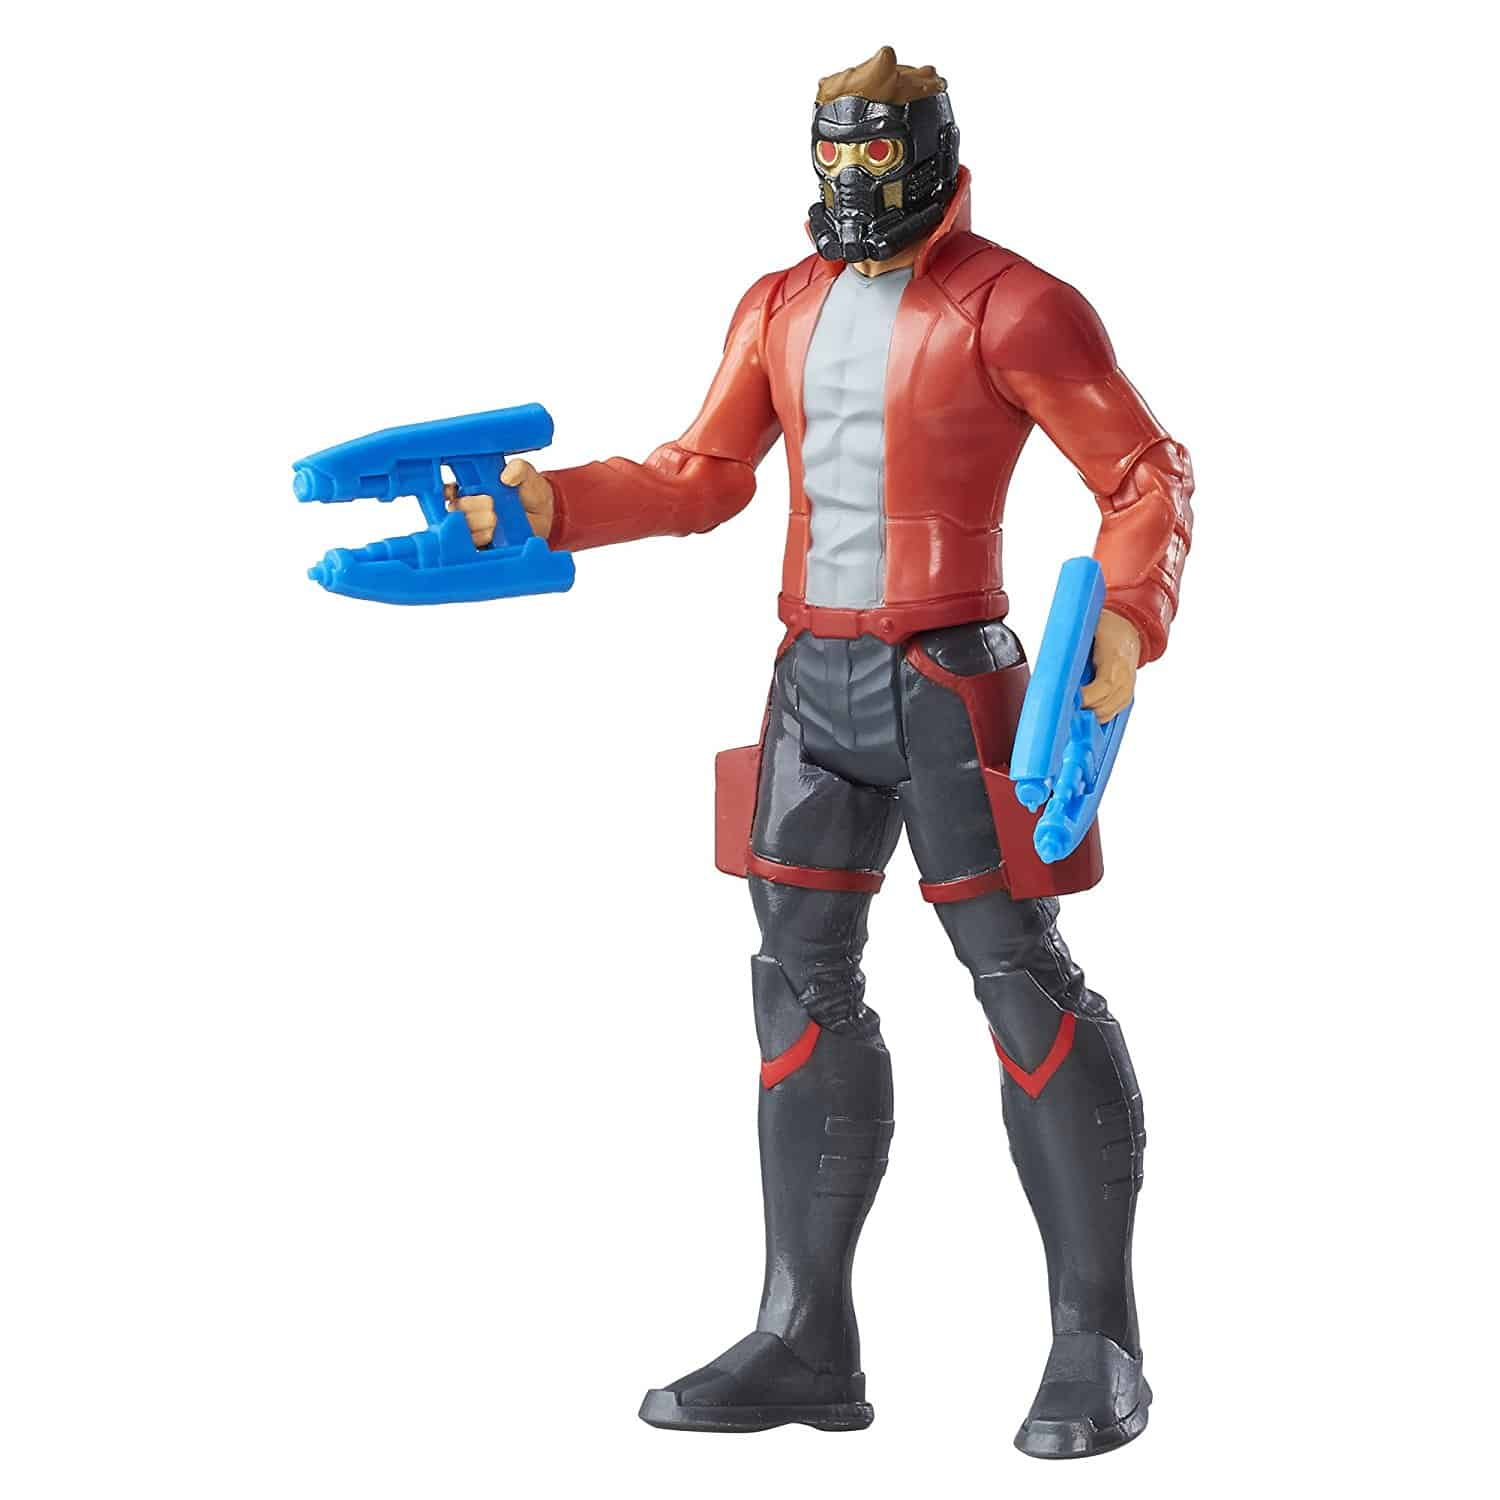 Star-Lord action figure is a must have Avengers Infinity War toy!